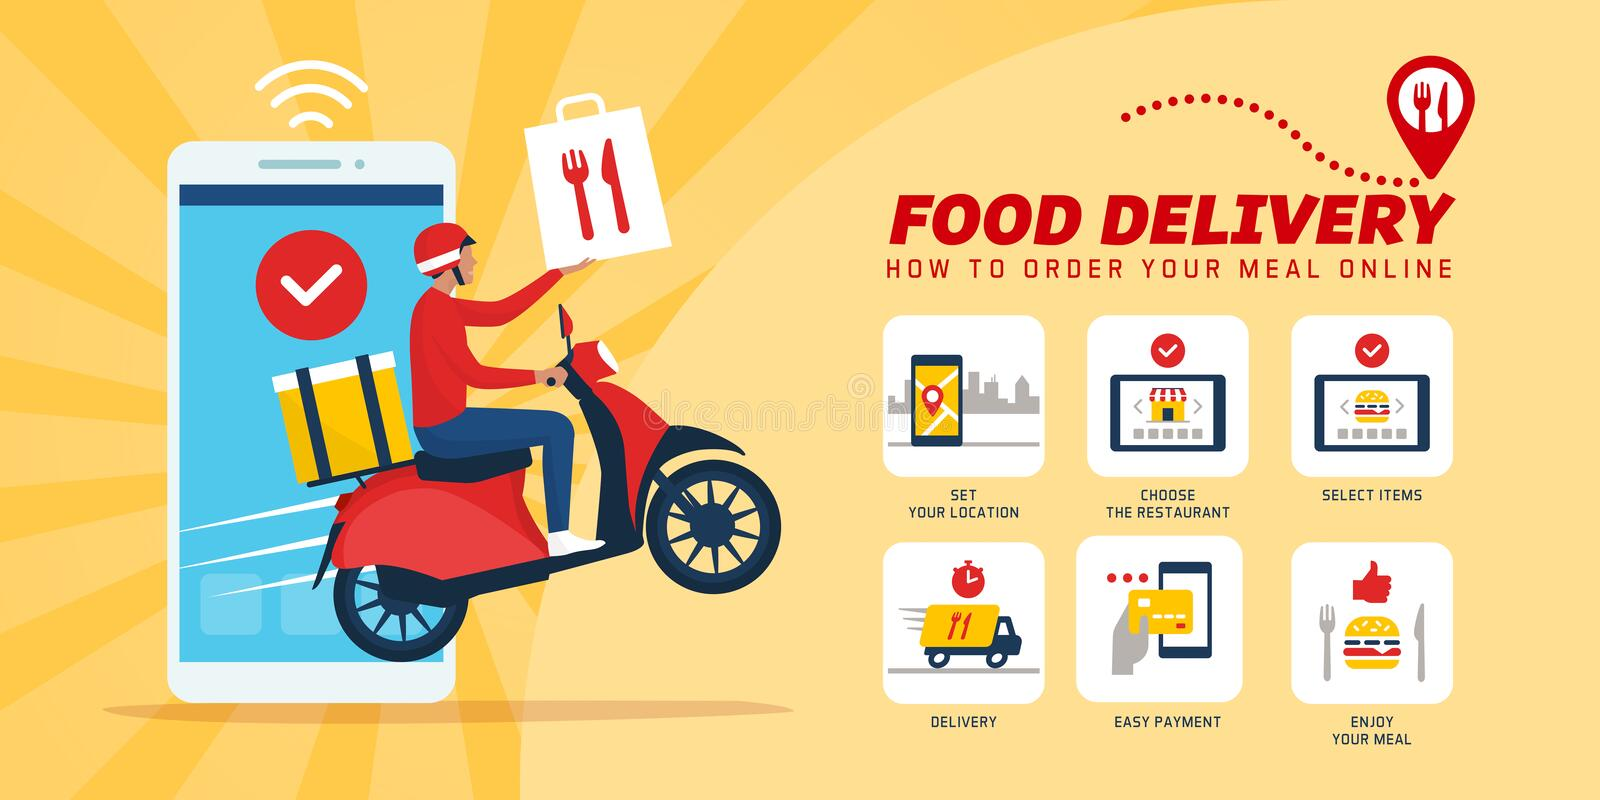 Fast food delivery app on a smartphone vector illustration